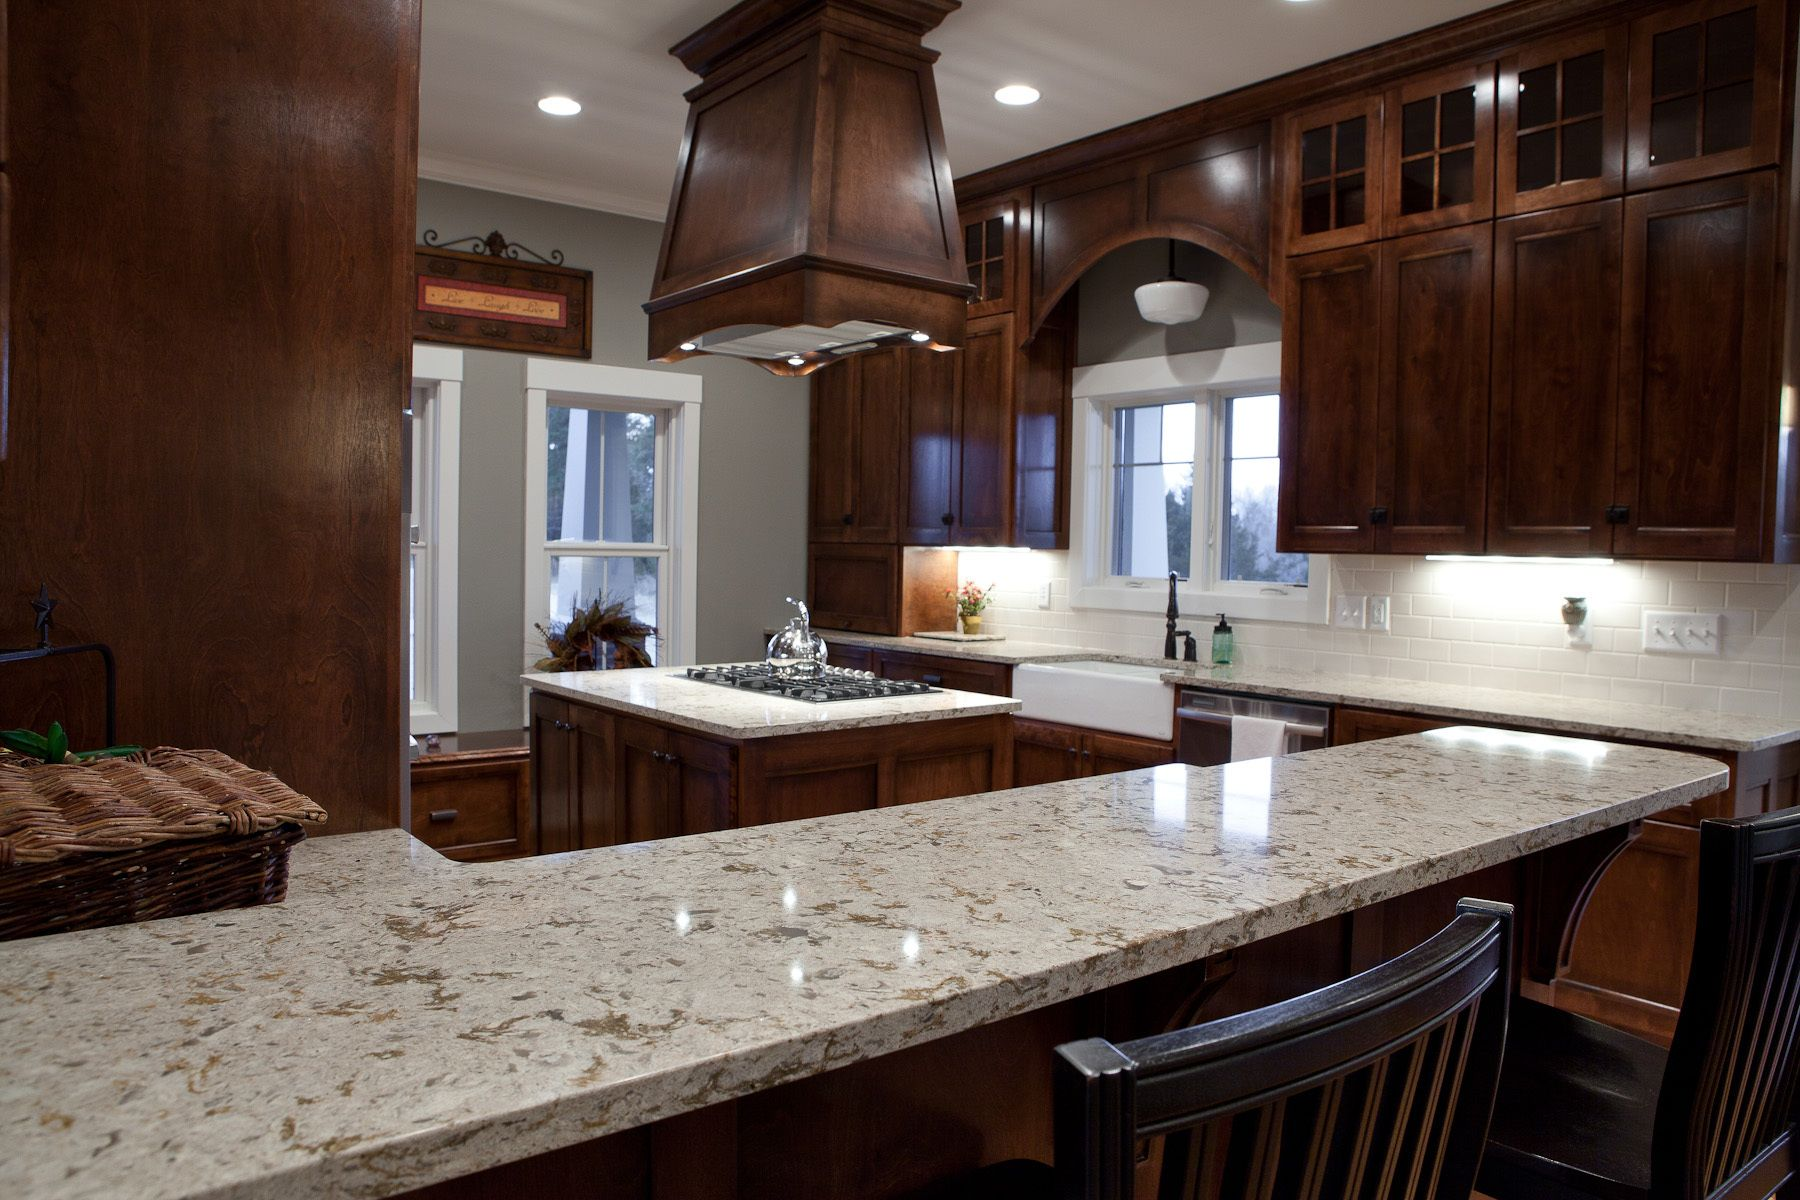 Fantastic wooden range hood over island with black stove What is the whitest quartz countertop